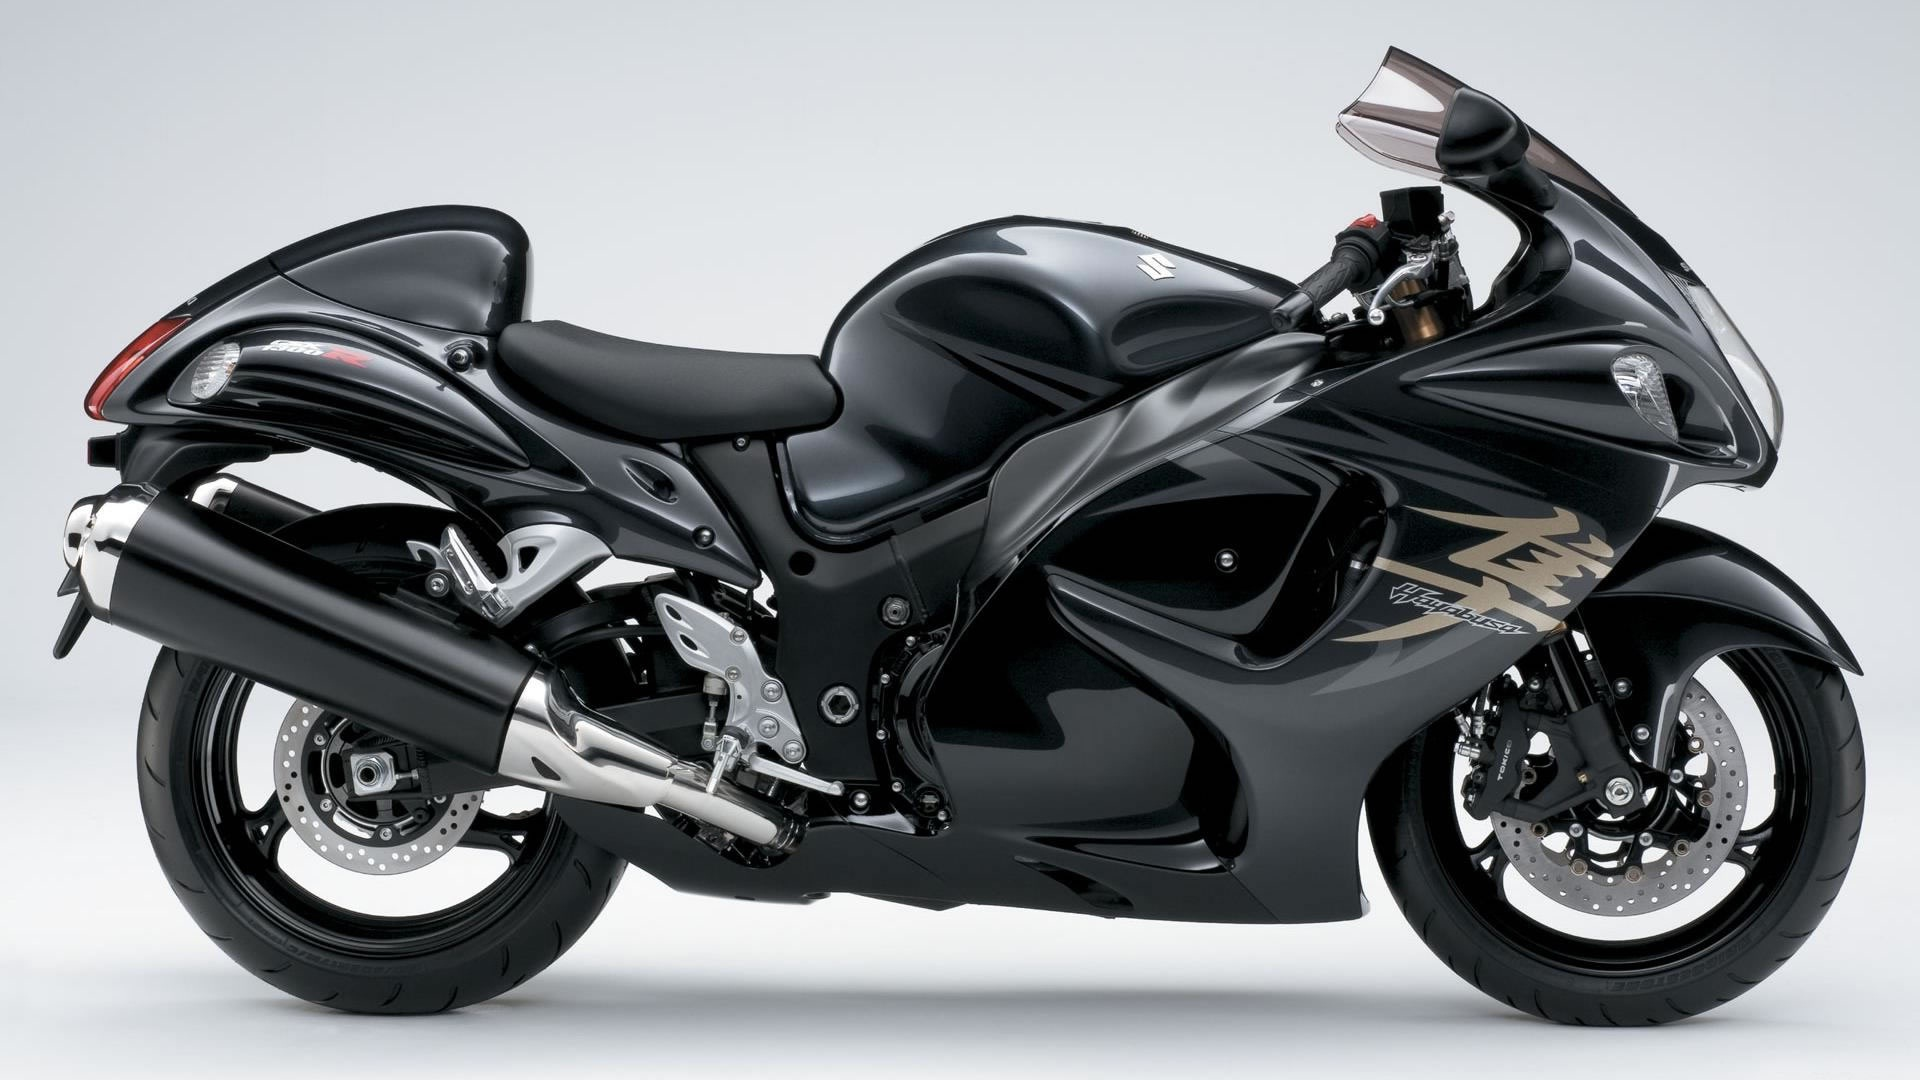 Hayabusa bike new wallpaper HD Wallpapers Rocks 1920x1080